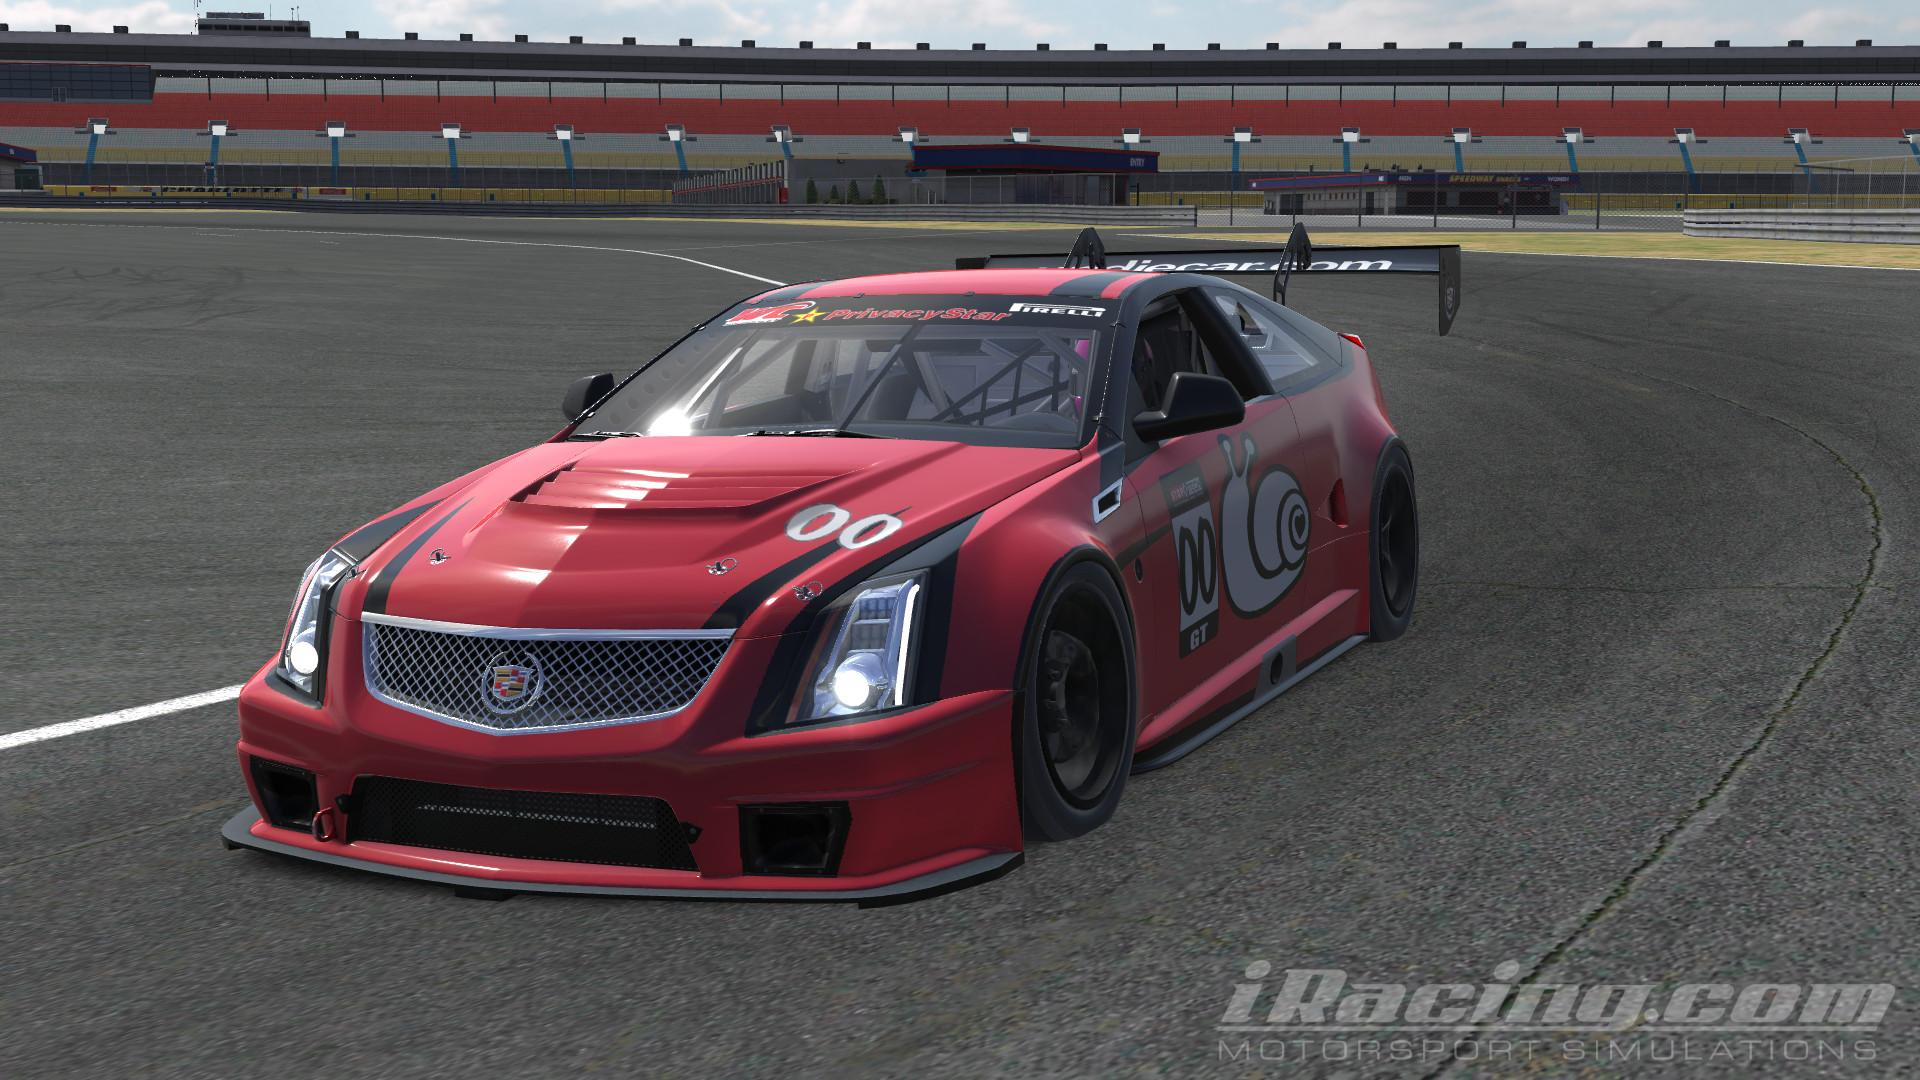 Preview of Undiecar Cadillac CTS-V by Ryan Hellyer